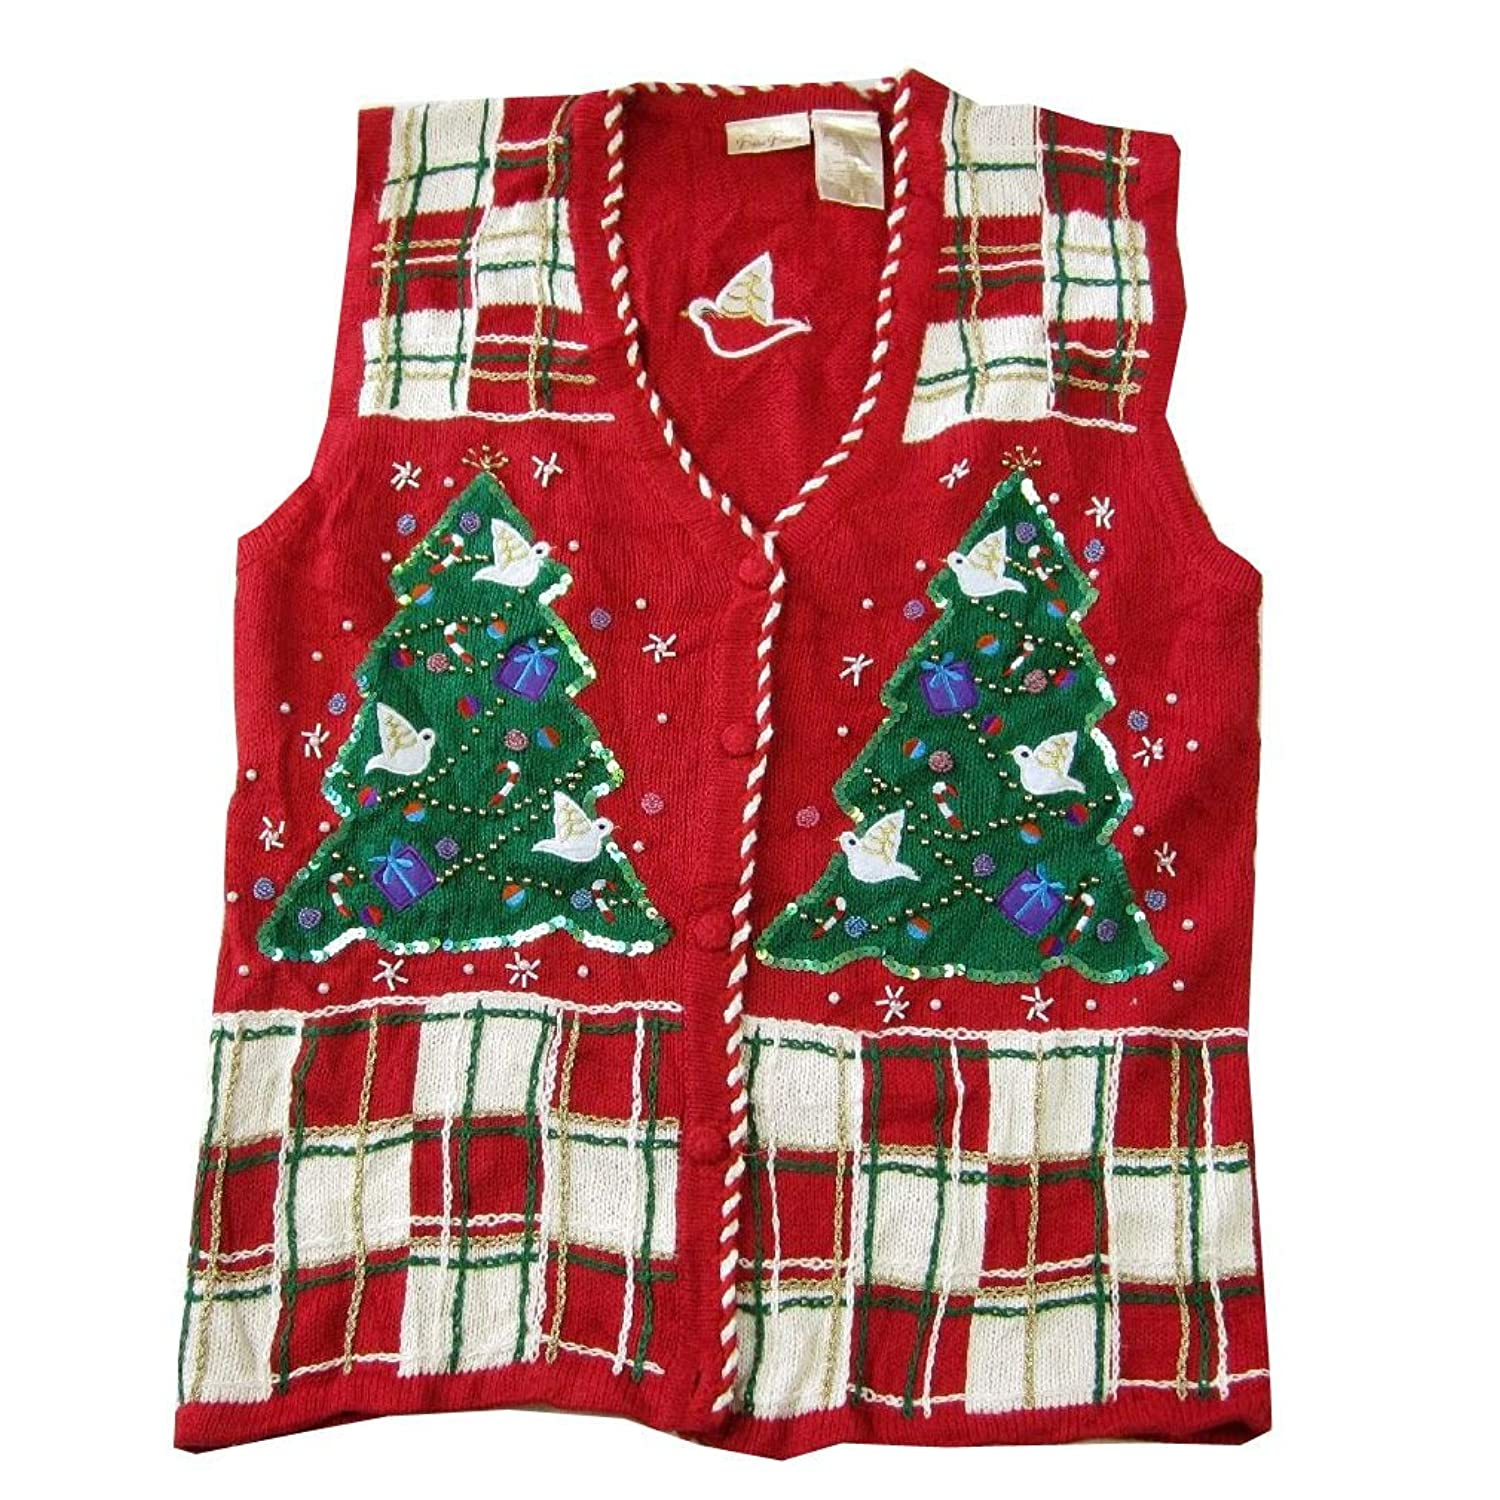 XVEST-1011 - Ugly Christmas Sweater Vest Ladies - Large - Red  цены